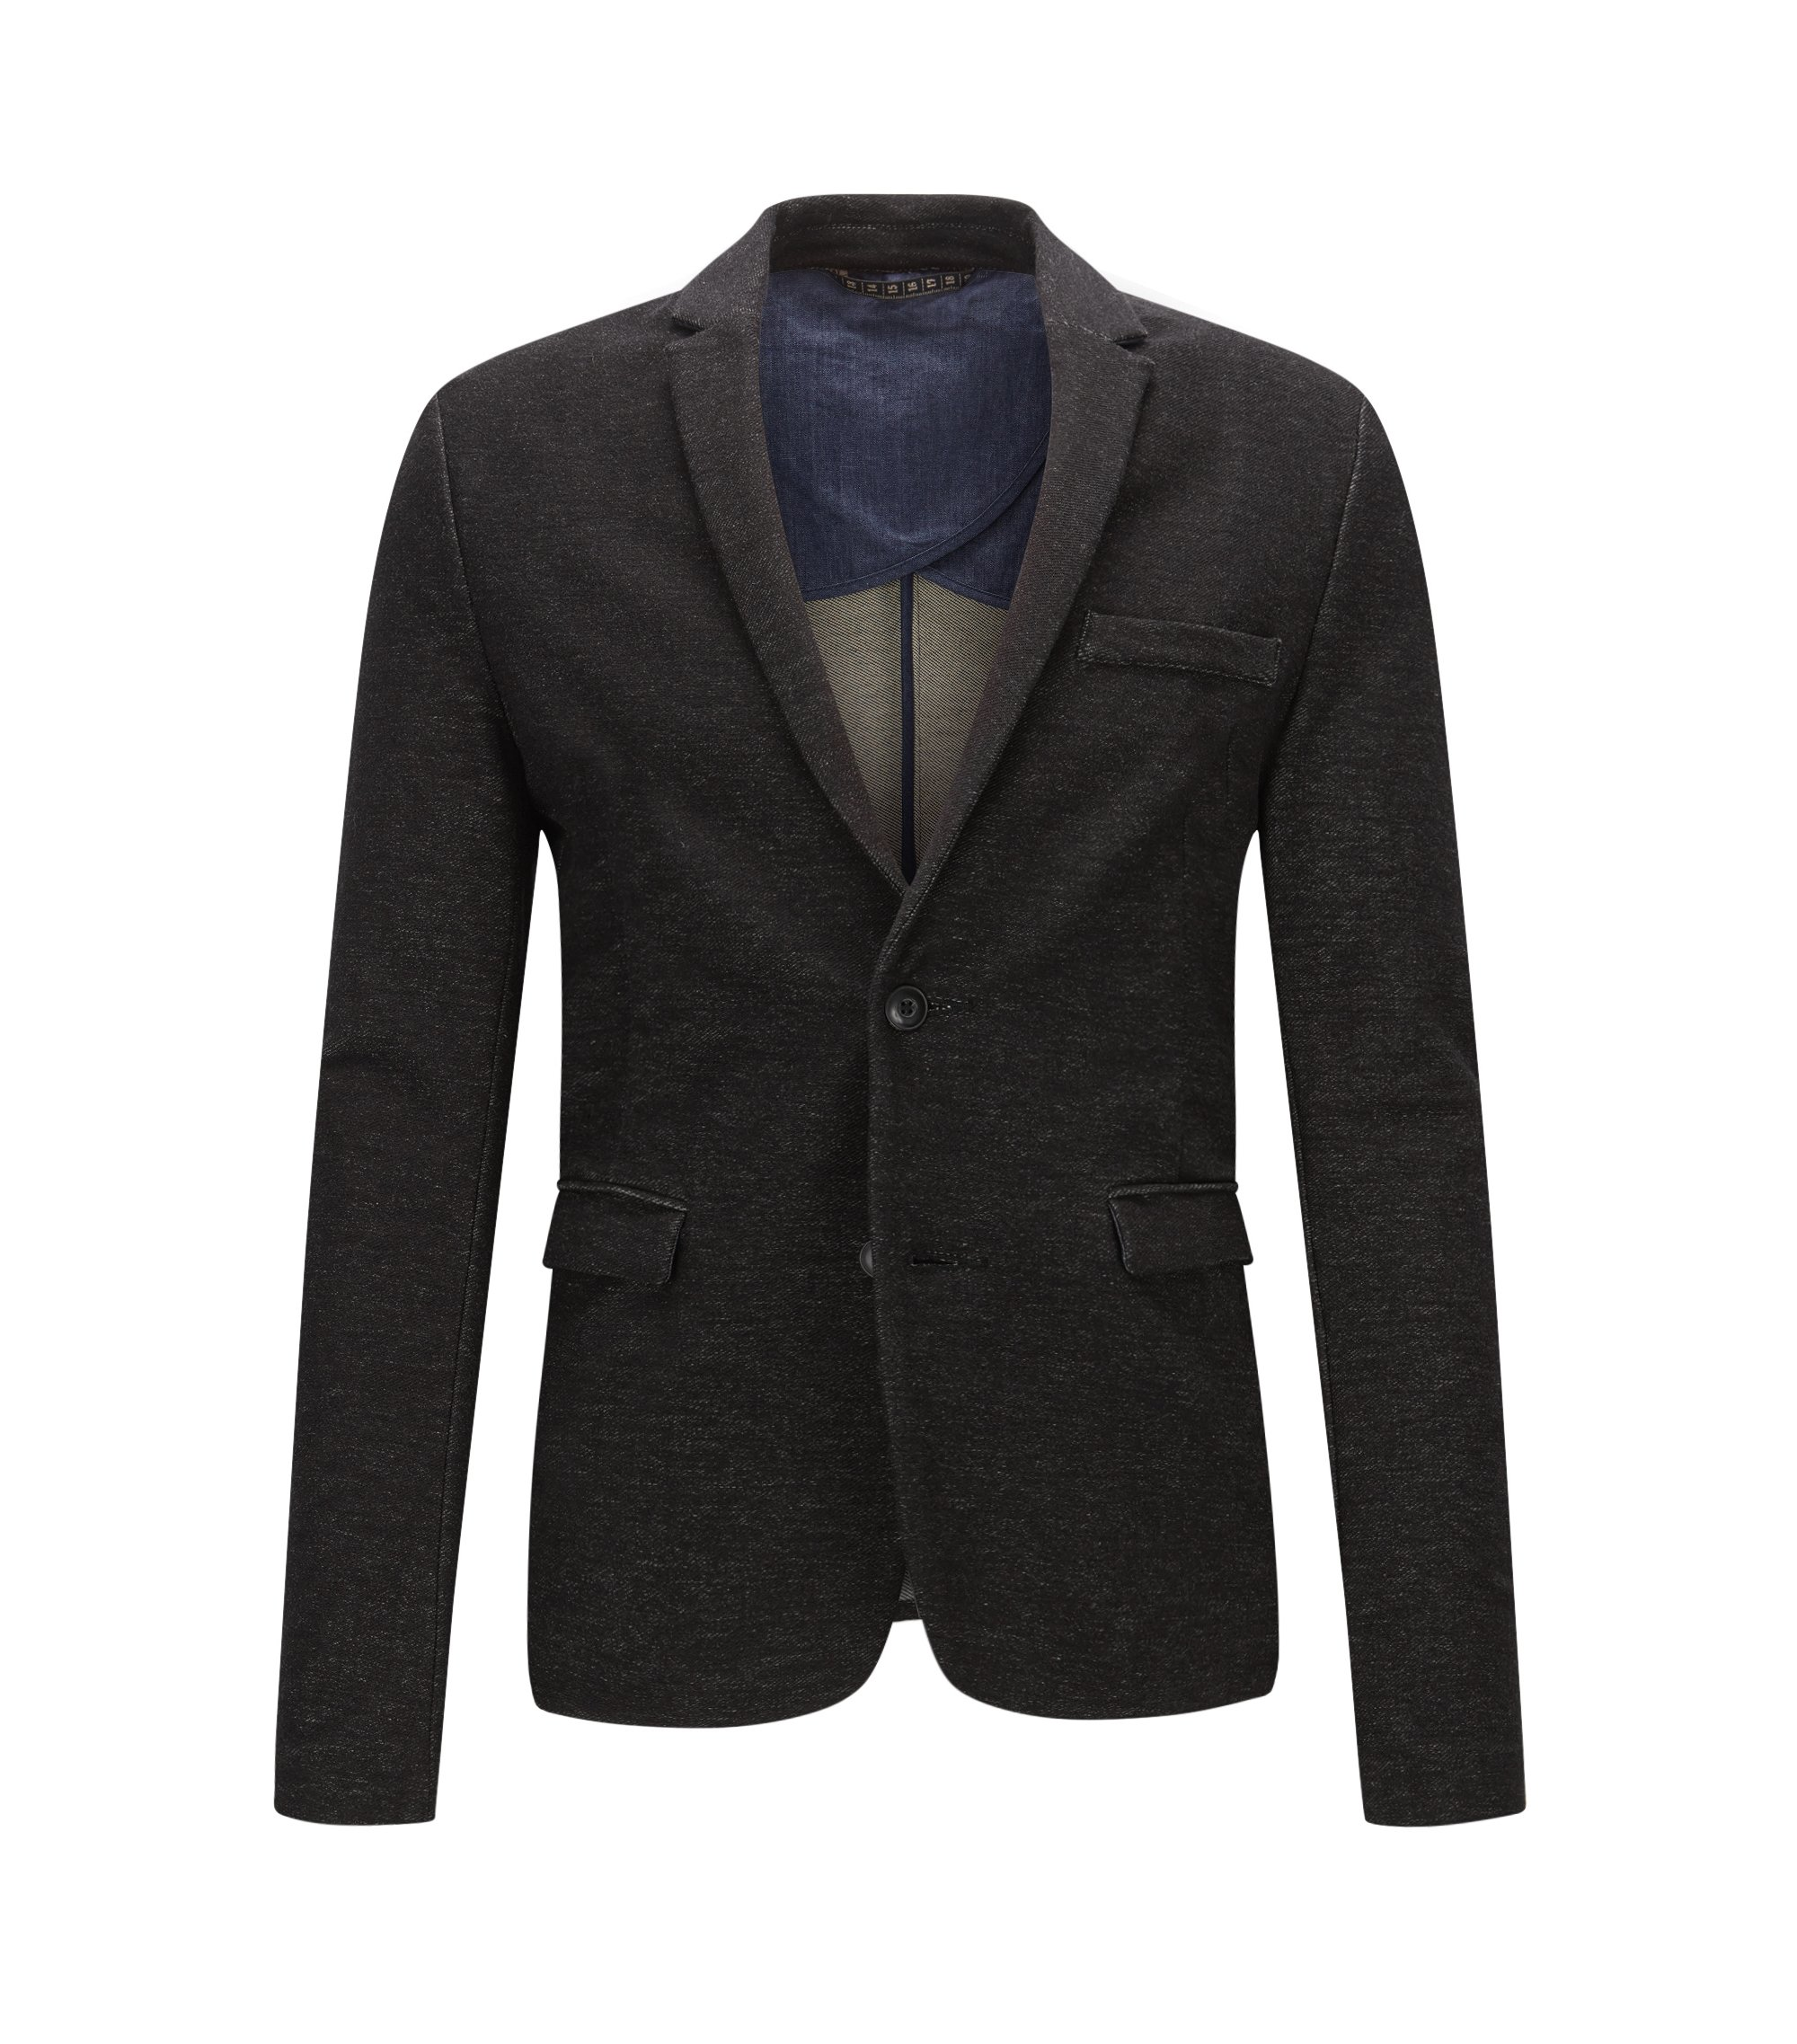 Slim-fit jacket in denim jersey, Black